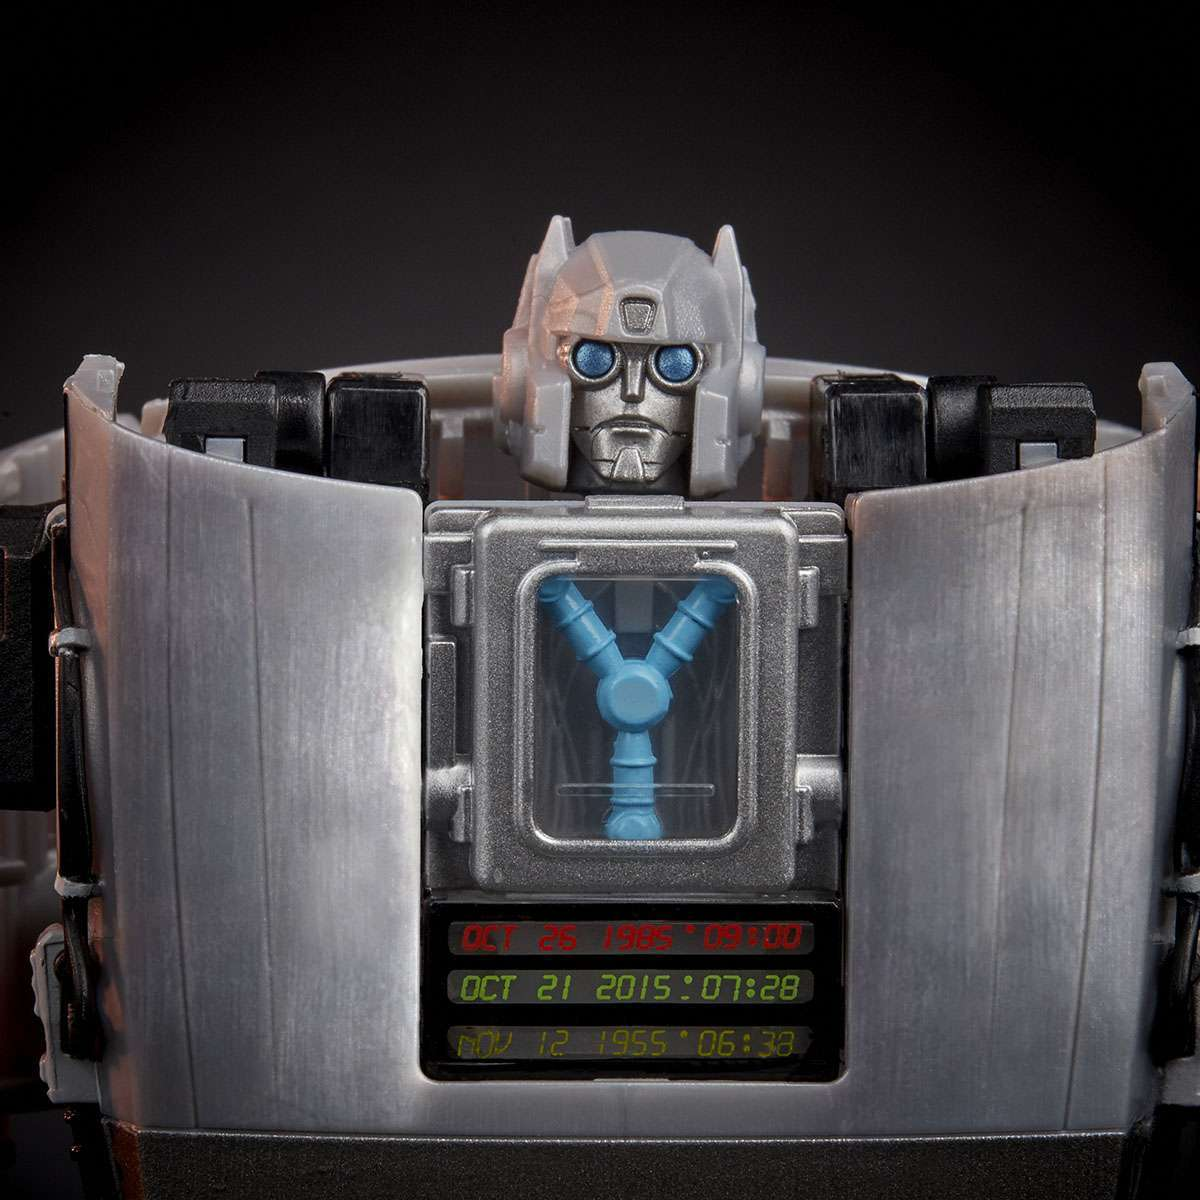 Hasbro-BTTFE8545_PROD_TRA_PROJECT_FUTURE_1856_Large_300DPI